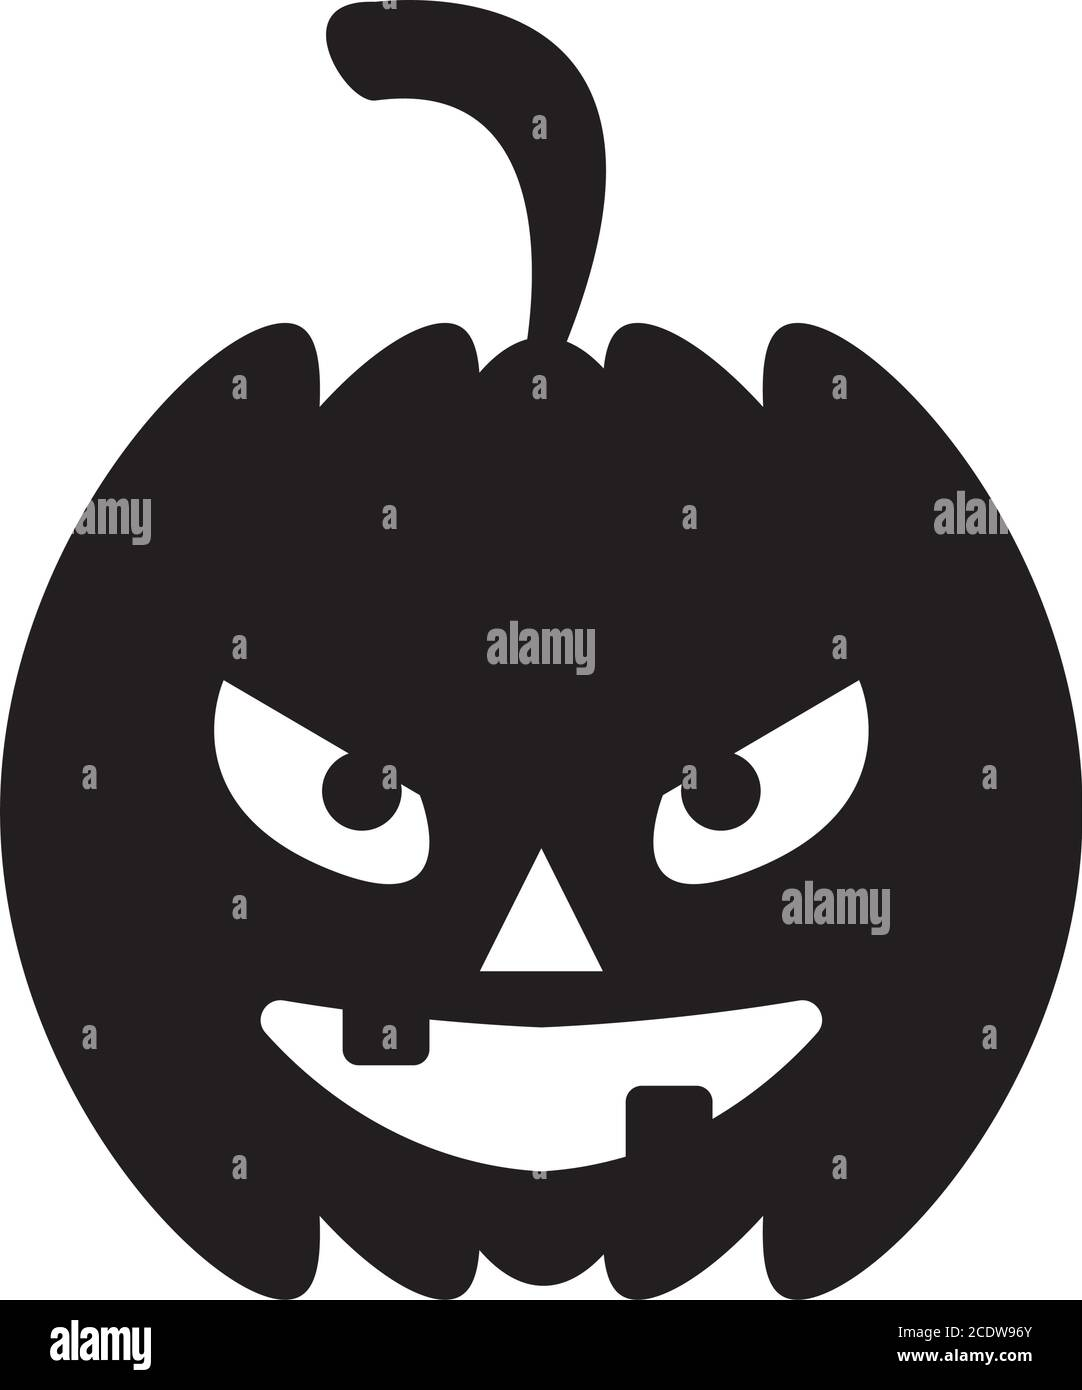 Halloween Pumpkin Silhouette Design Holiday And Scary Theme Vector Illustration Stock Vector Image Art Alamy On this page presented 32+ pumpkin silhouette photos and images free for download and editing. https www alamy com halloween pumpkin silhouette design holiday and scary theme vector illustration image369964307 html